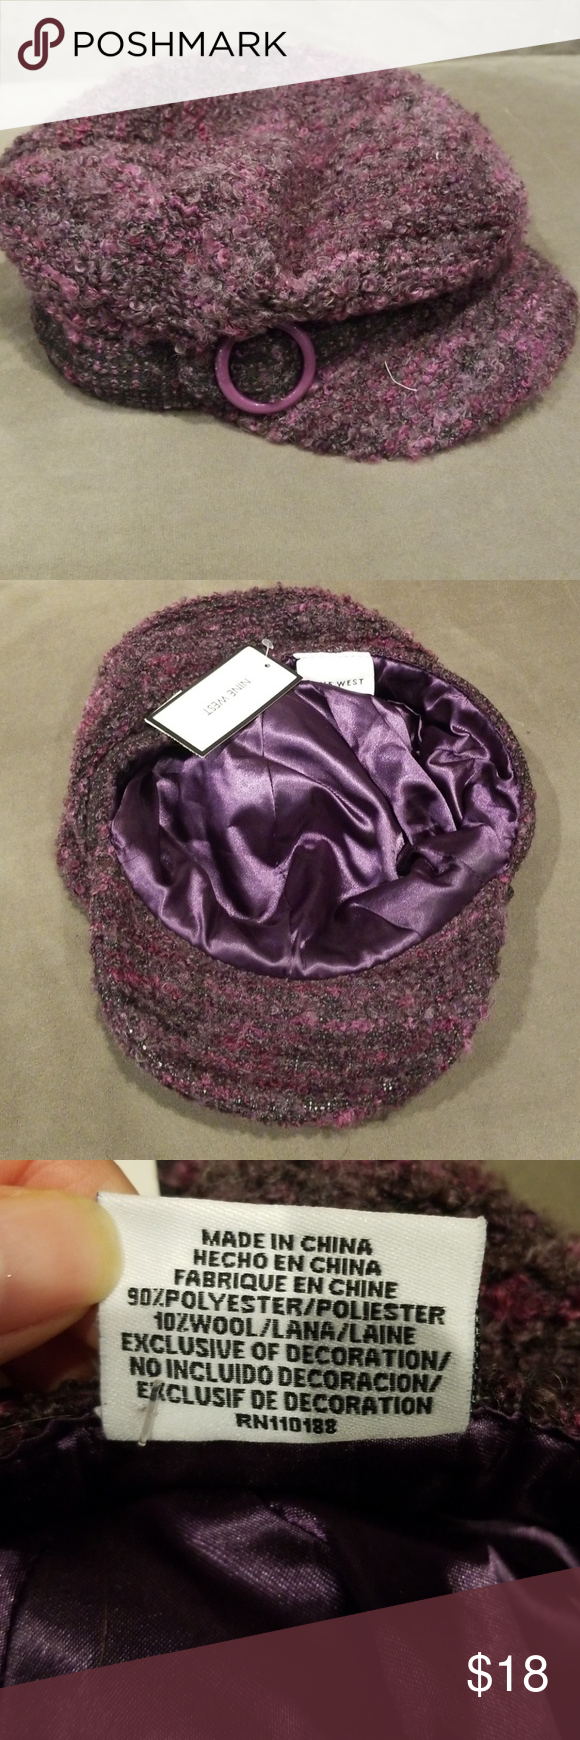 58fdfe02a93 Nine West hat Nine West chic hat with purple and pink hues. Material is 90%  polyester